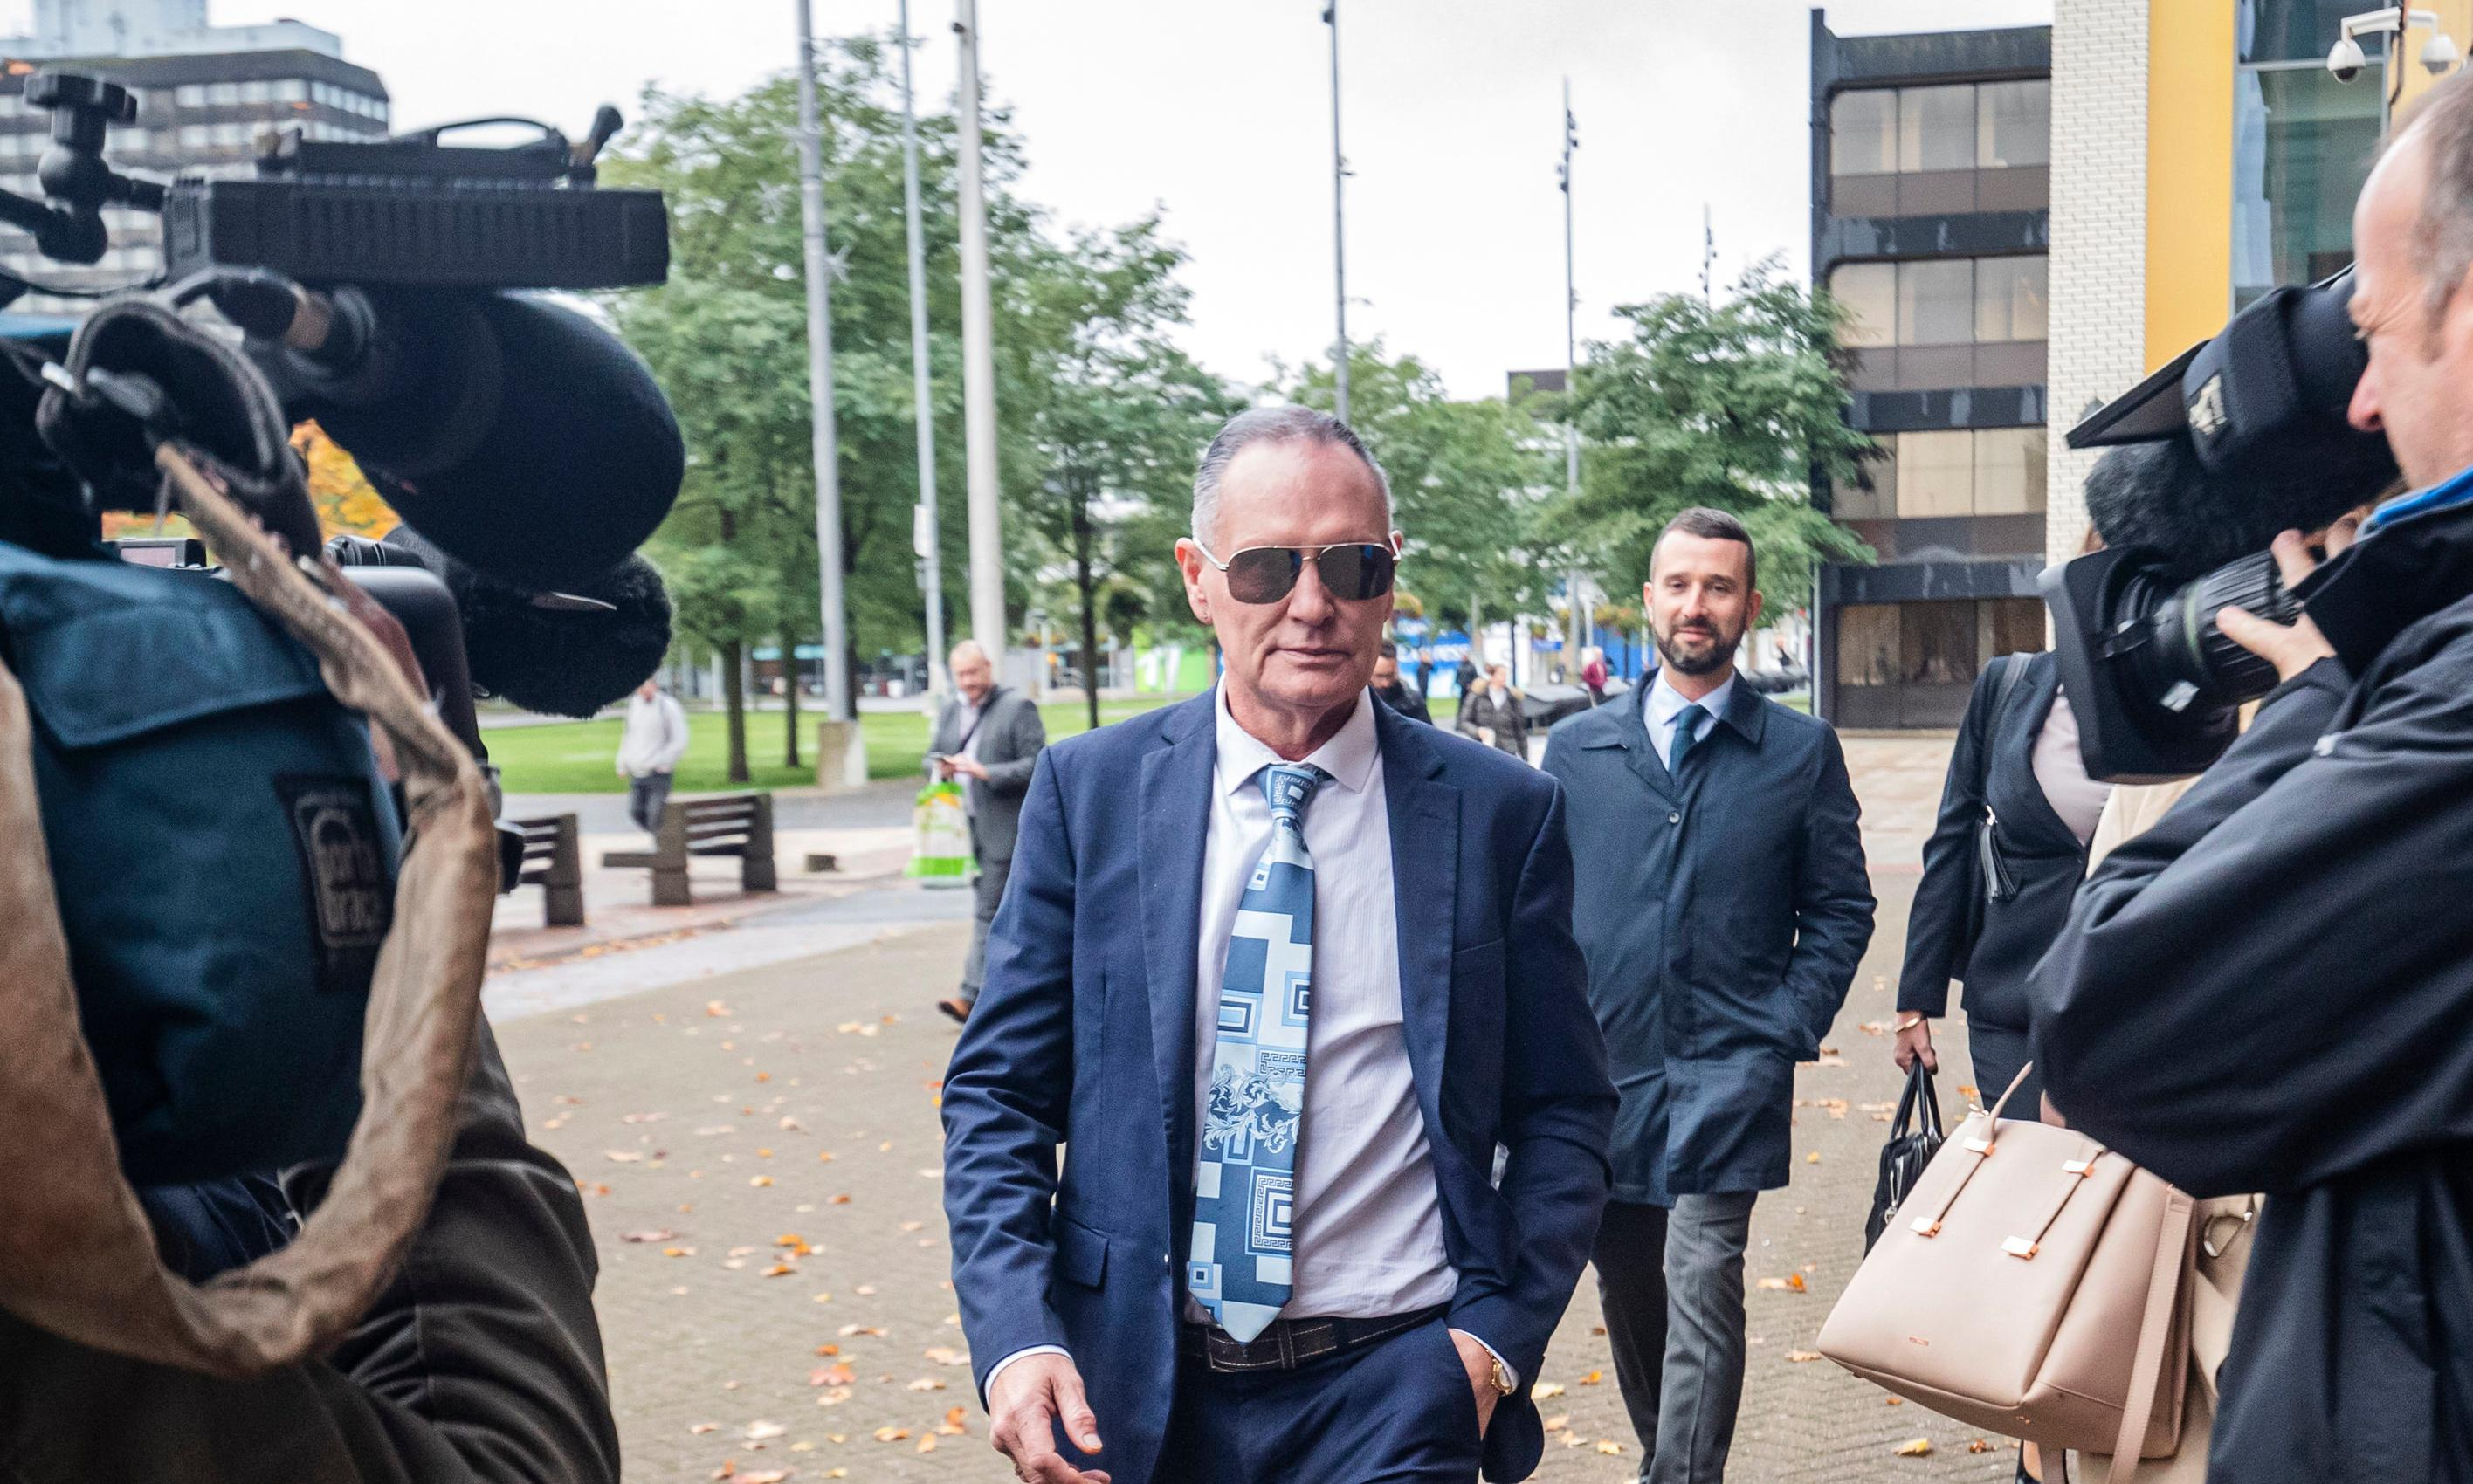 I kissed woman to boost her confidence, Paul Gascoigne tells assault trial